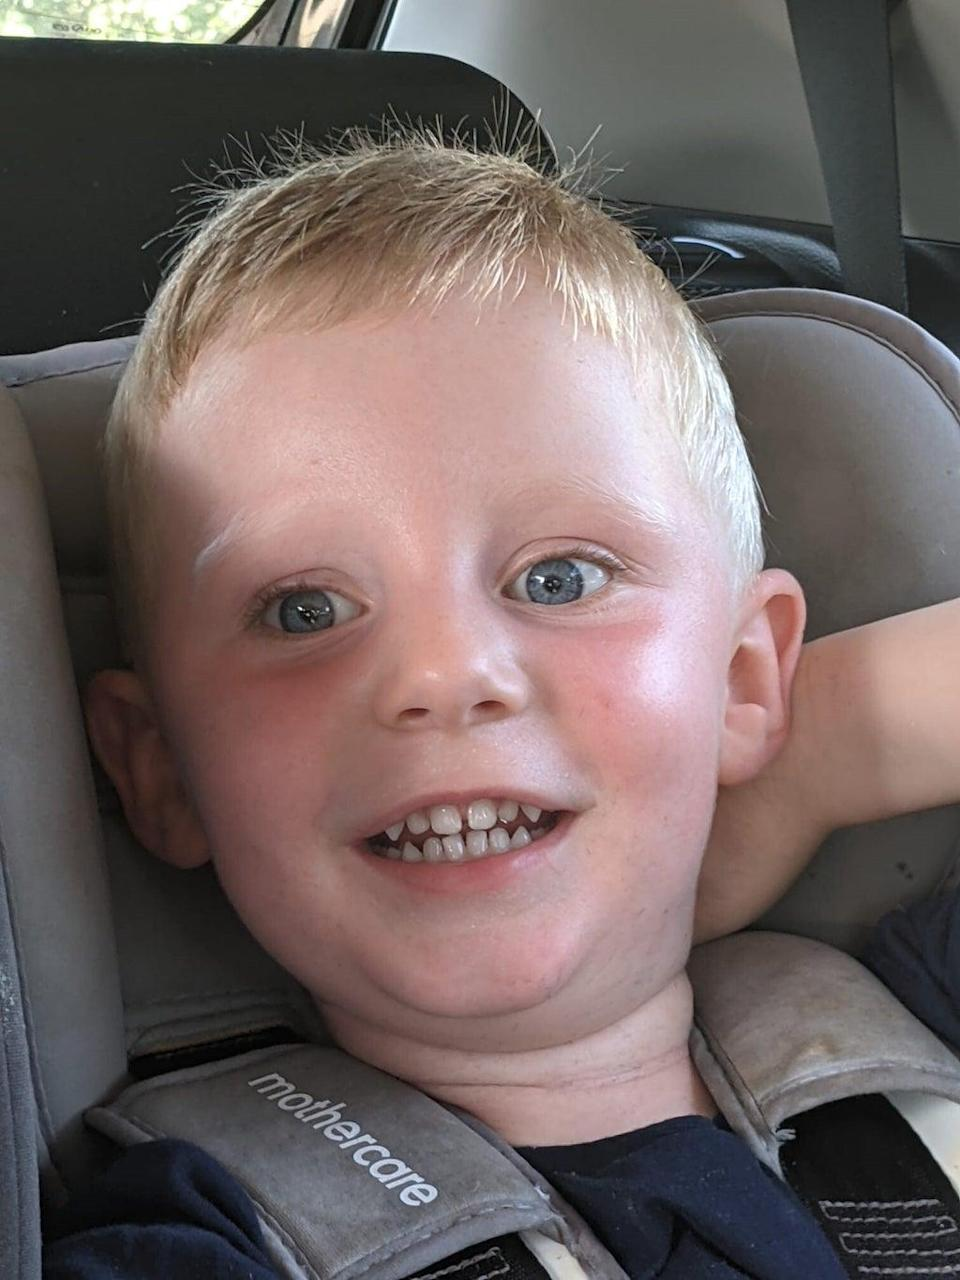 Reid Steele, two, who died in hospital after being found critically injured at a house in Bridgend (South Wales Police/PA) (PA Media)